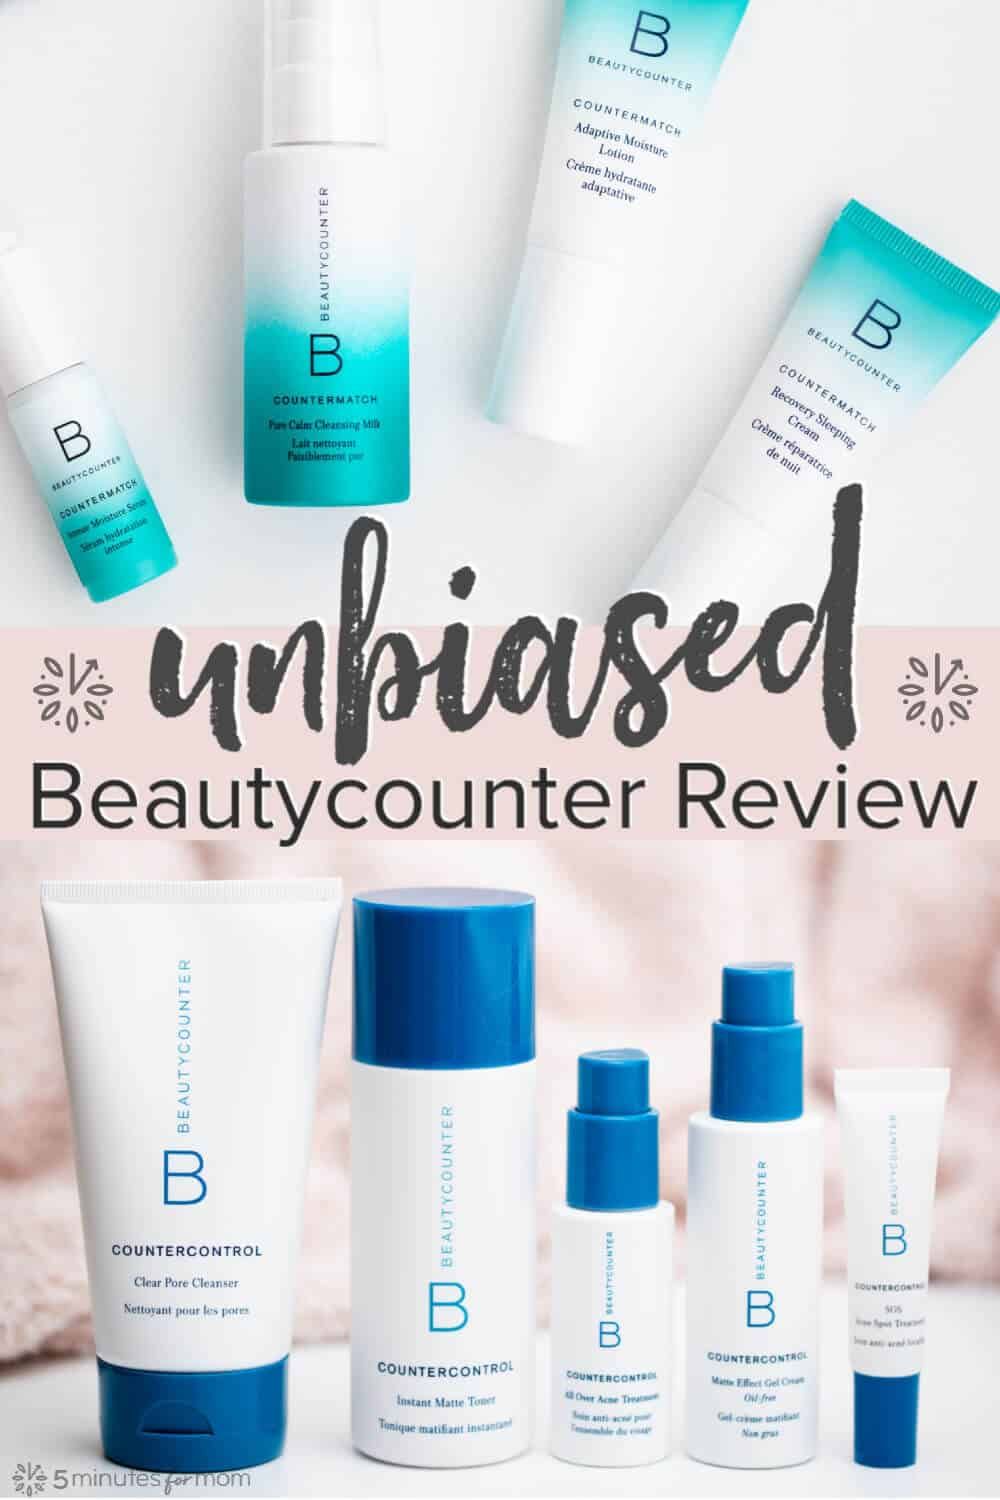 Beautycounter Review - Unbiased Product Review